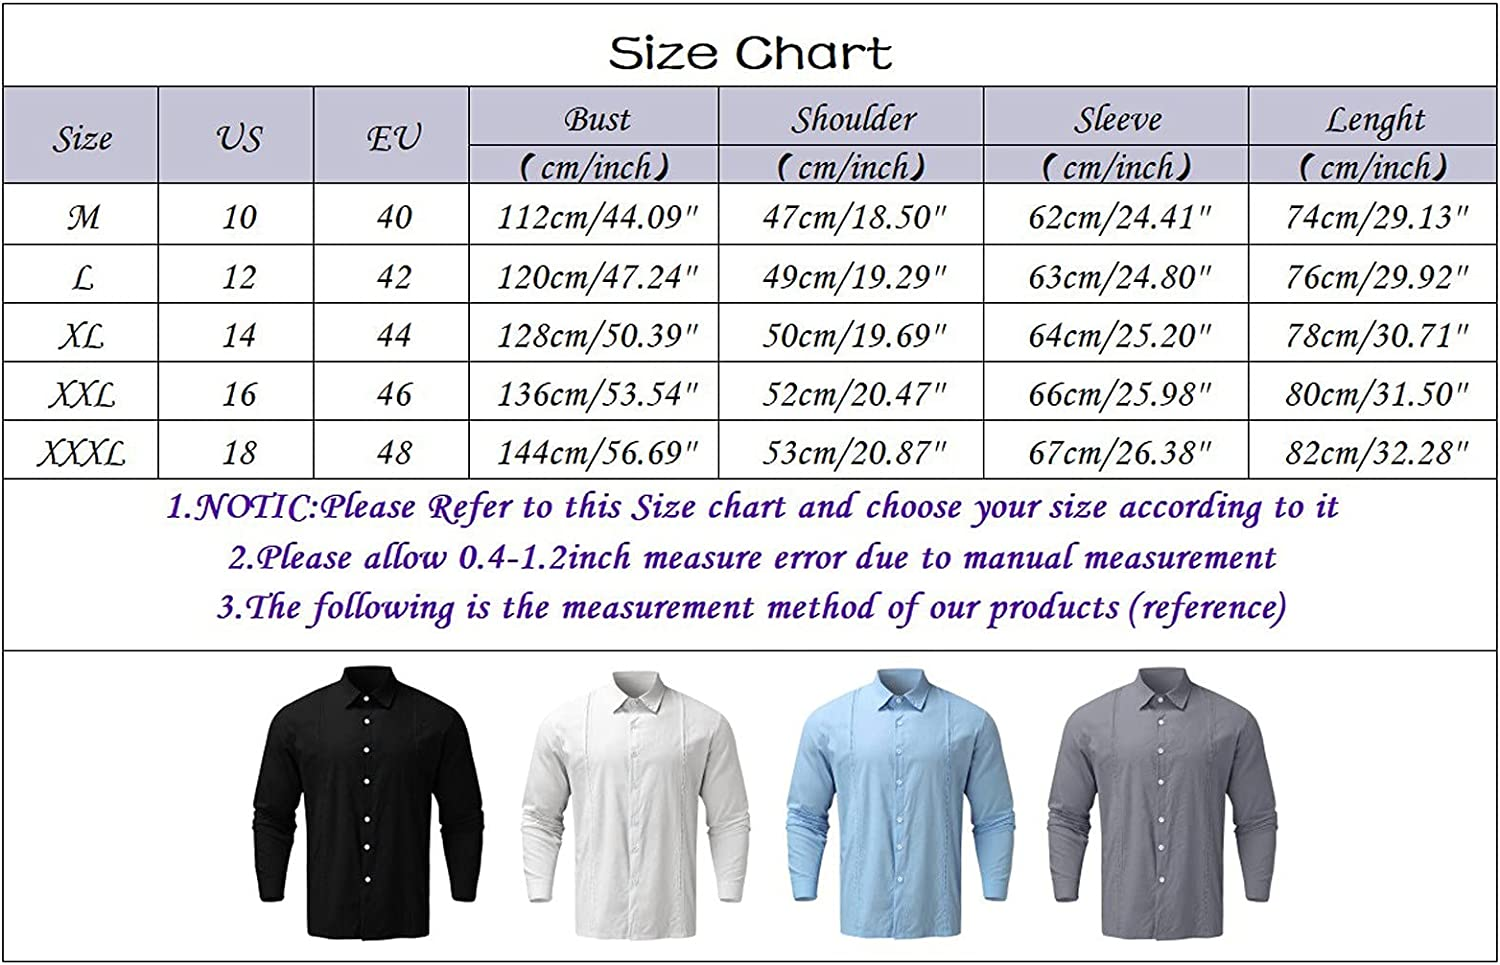 XXBR Men's Cotton Linen Shirts Long Sleeve Fall Button Down Turn-down Shirt Relaxed-Fit Solid Color Casual Beach Tops